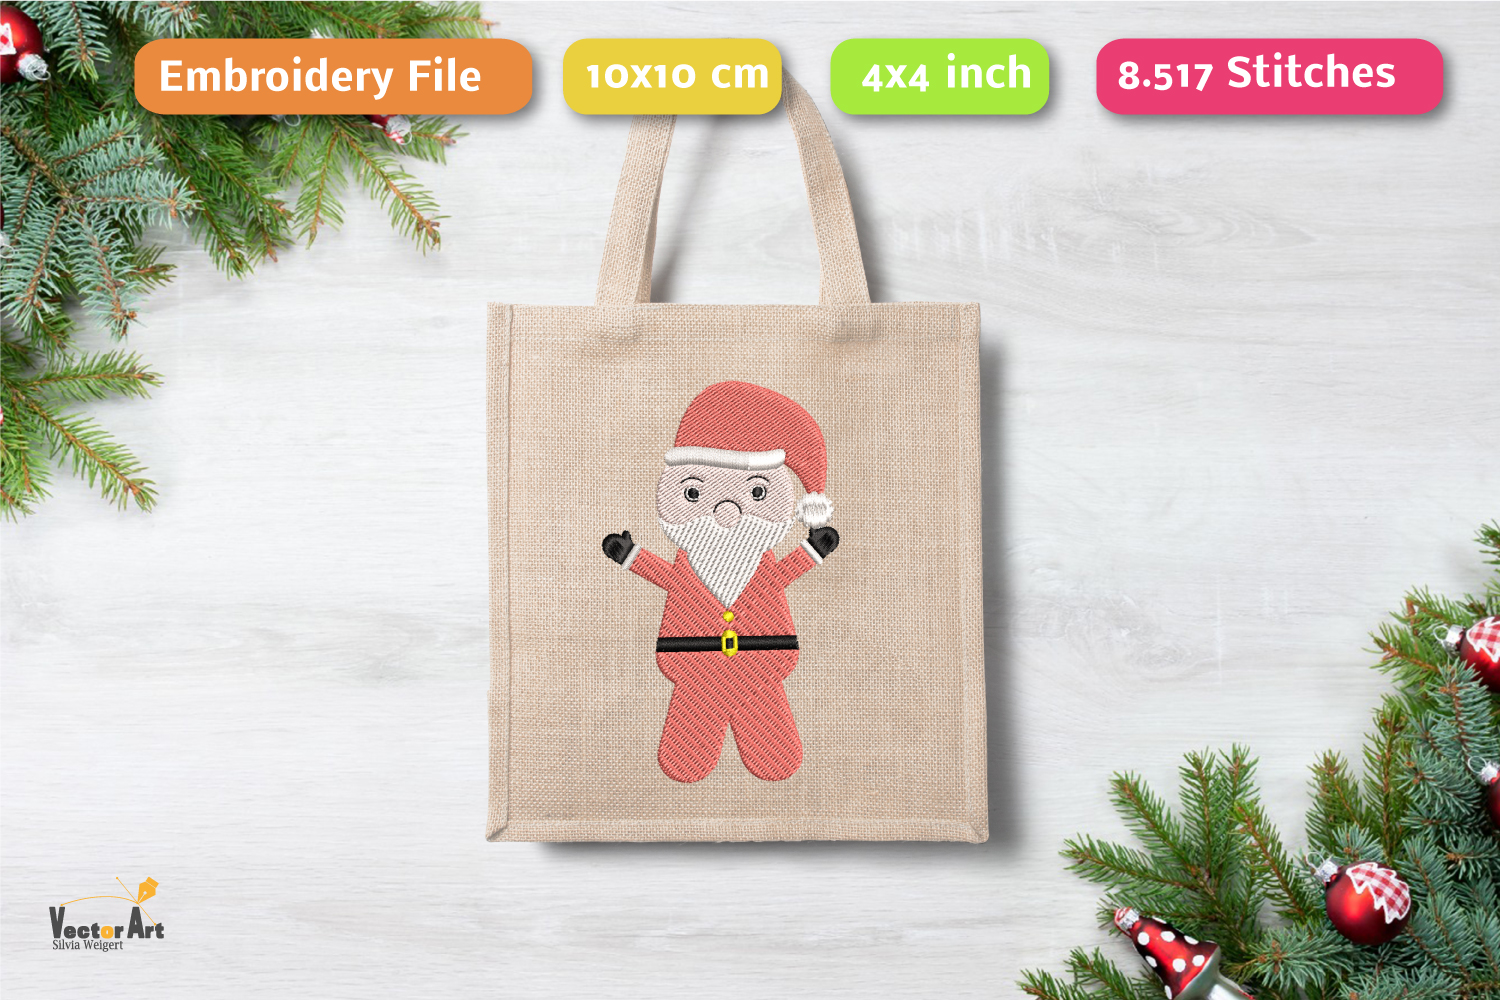 Santa Claus - Embroidery File - 4x4 inch example image 1